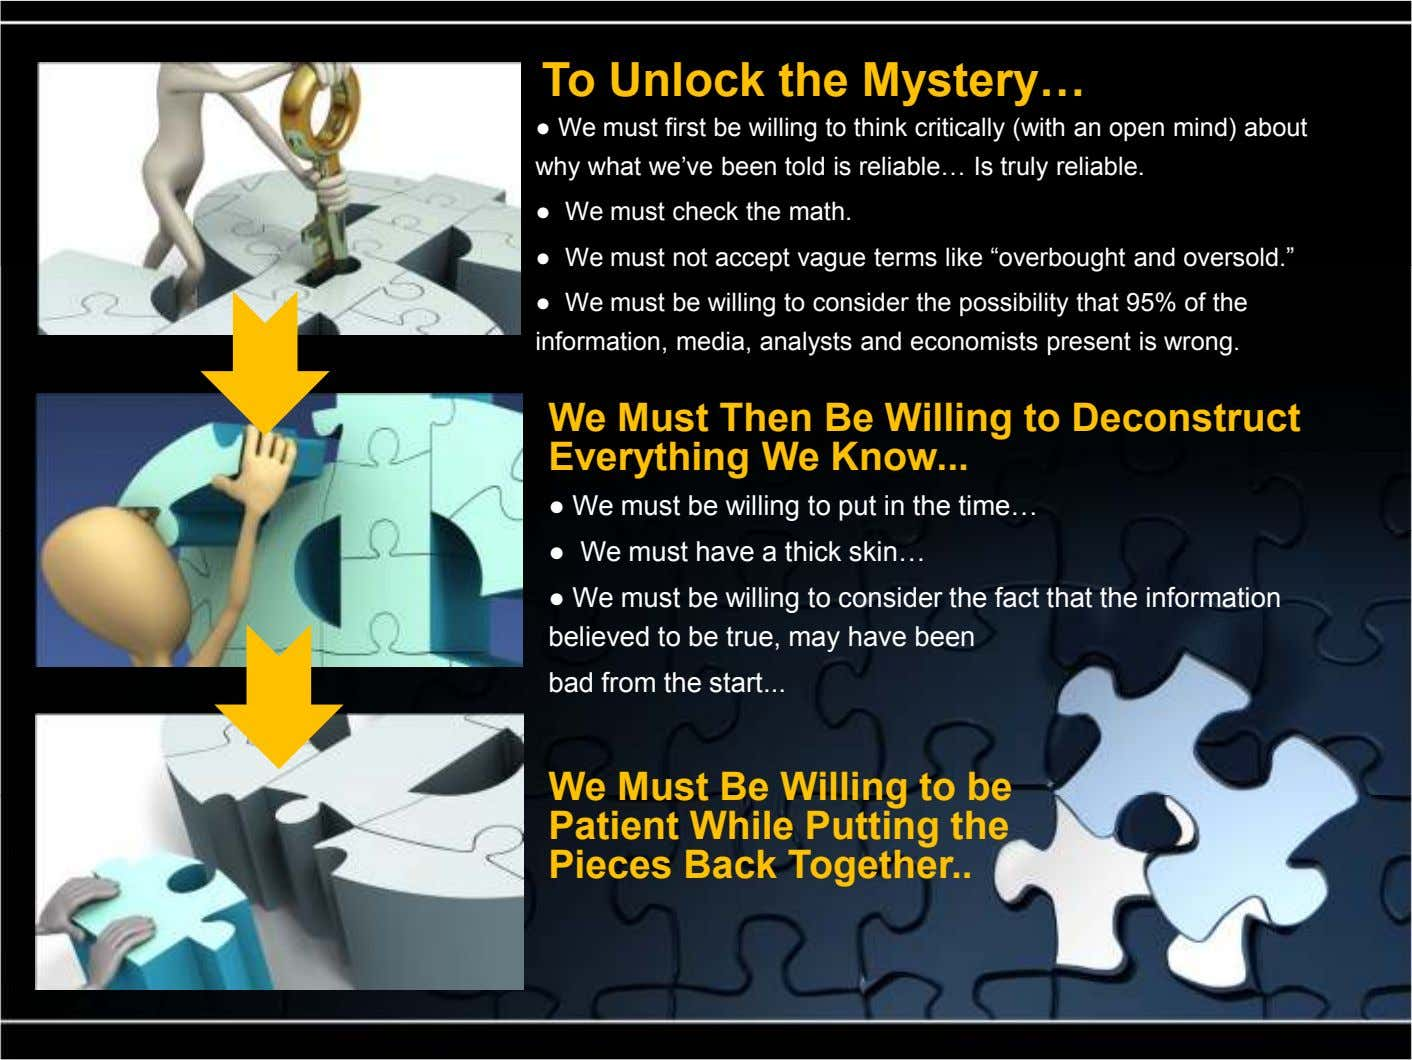 To Unlock the Mystery ● We must first be willing to think critically (with an open